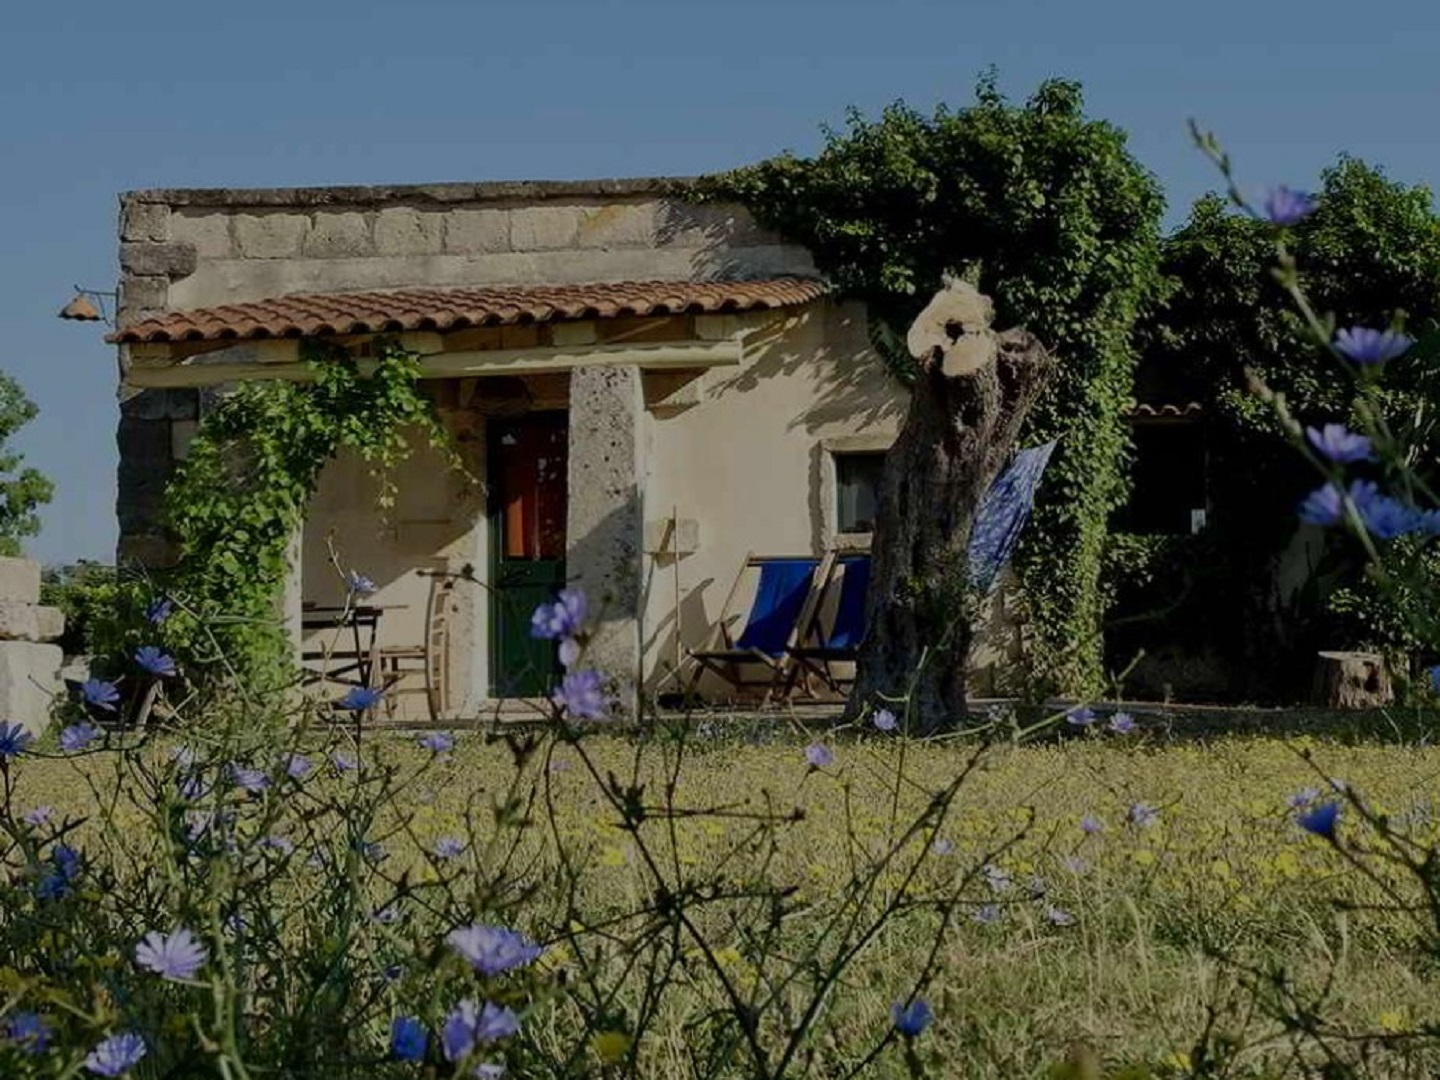 A house with trees in the background at Agriturismo Masseria Sant'Angelo.